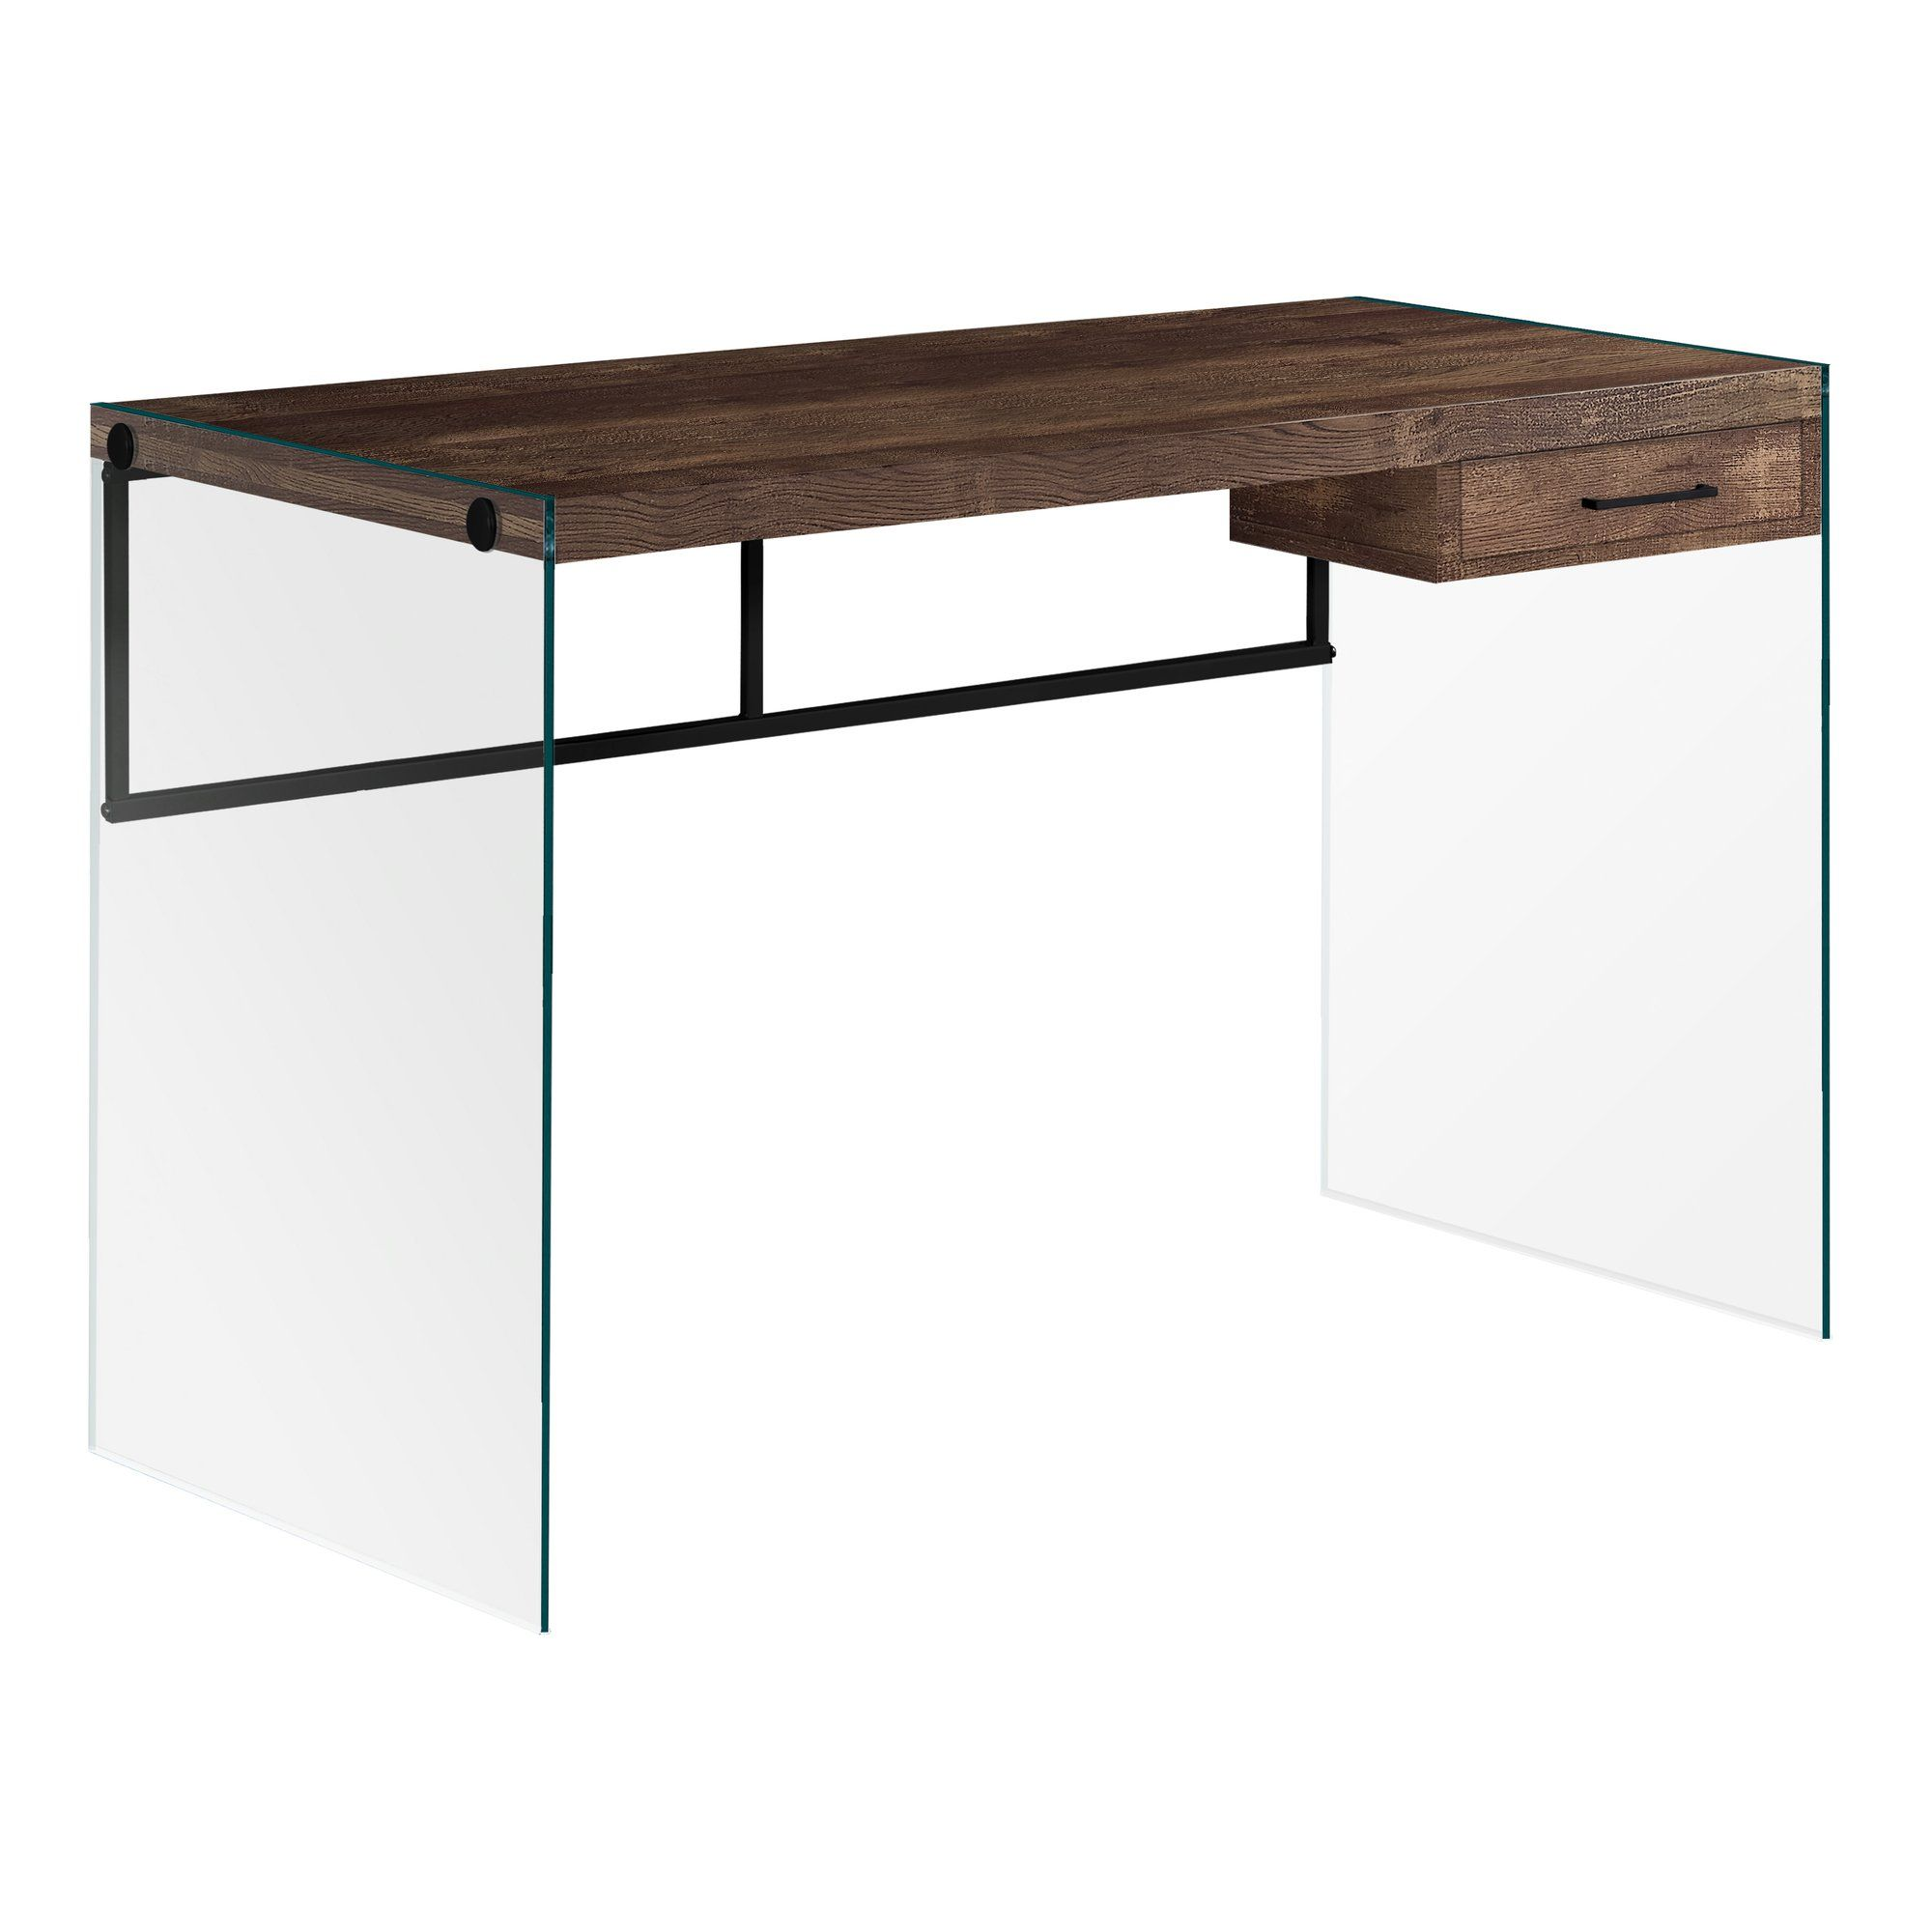 23 75 X 48 X 30 Brown Black Clear Particle Board Computer Desk Brown Computer Desk Computer Desk Glass Desk Office